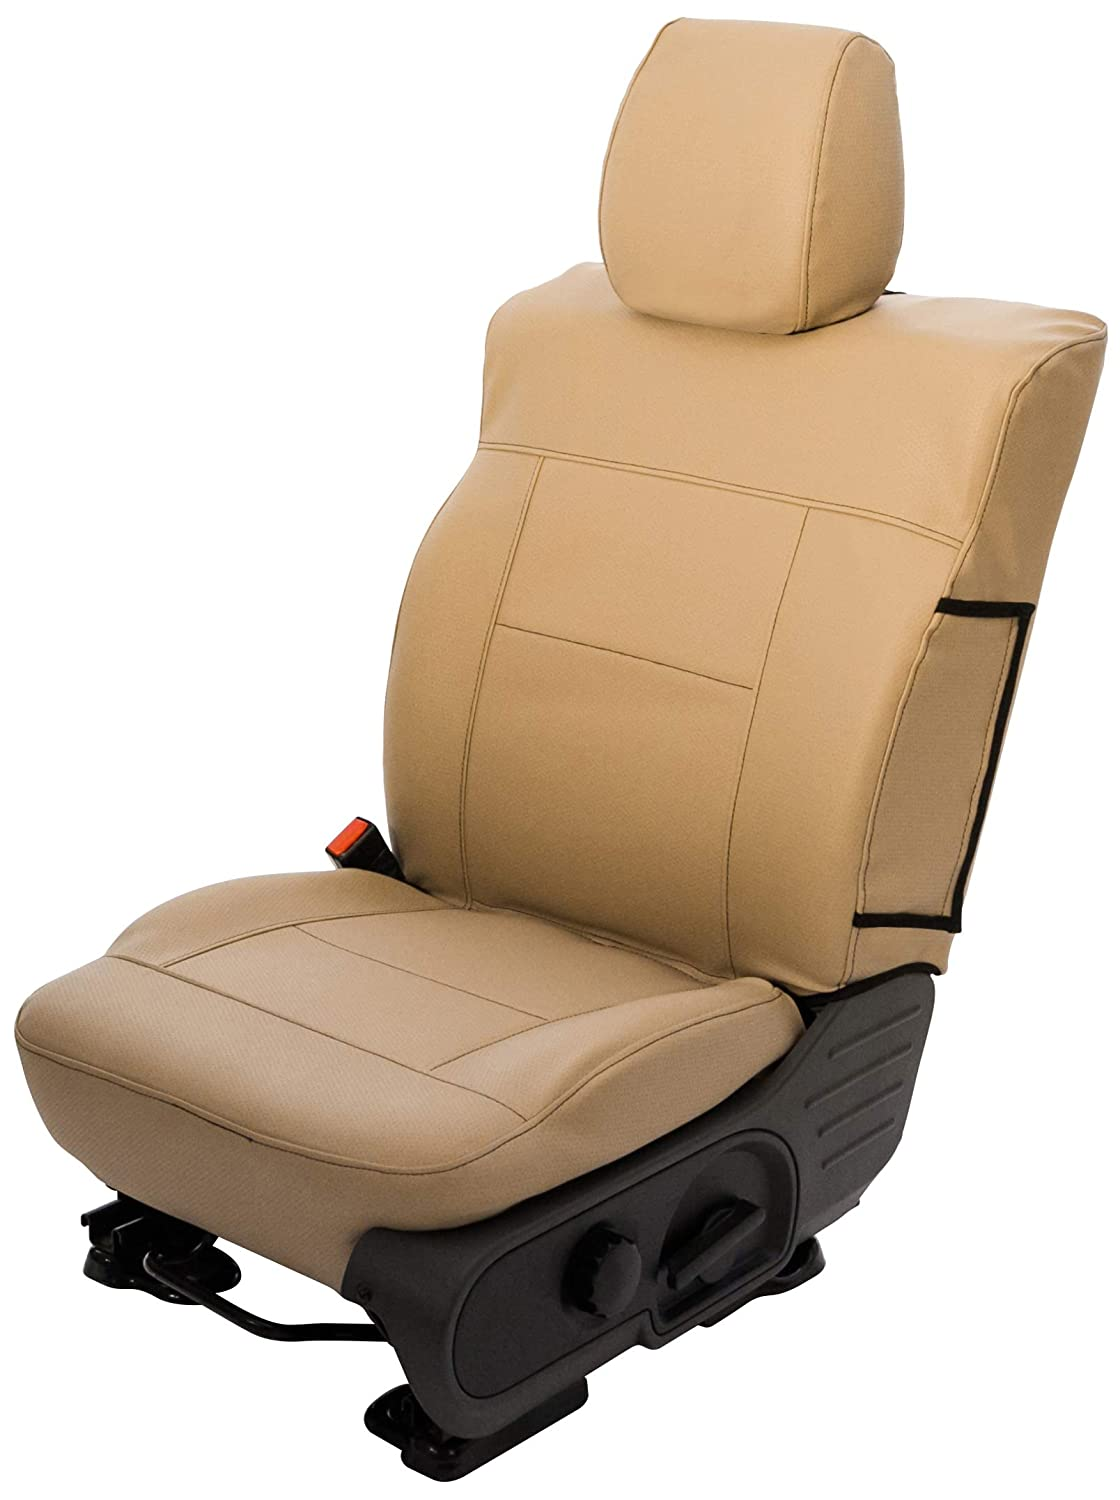 Saddleman S 779930-14 Gray Custom Made Front Low Back Bucket with Airbag Seat Covers